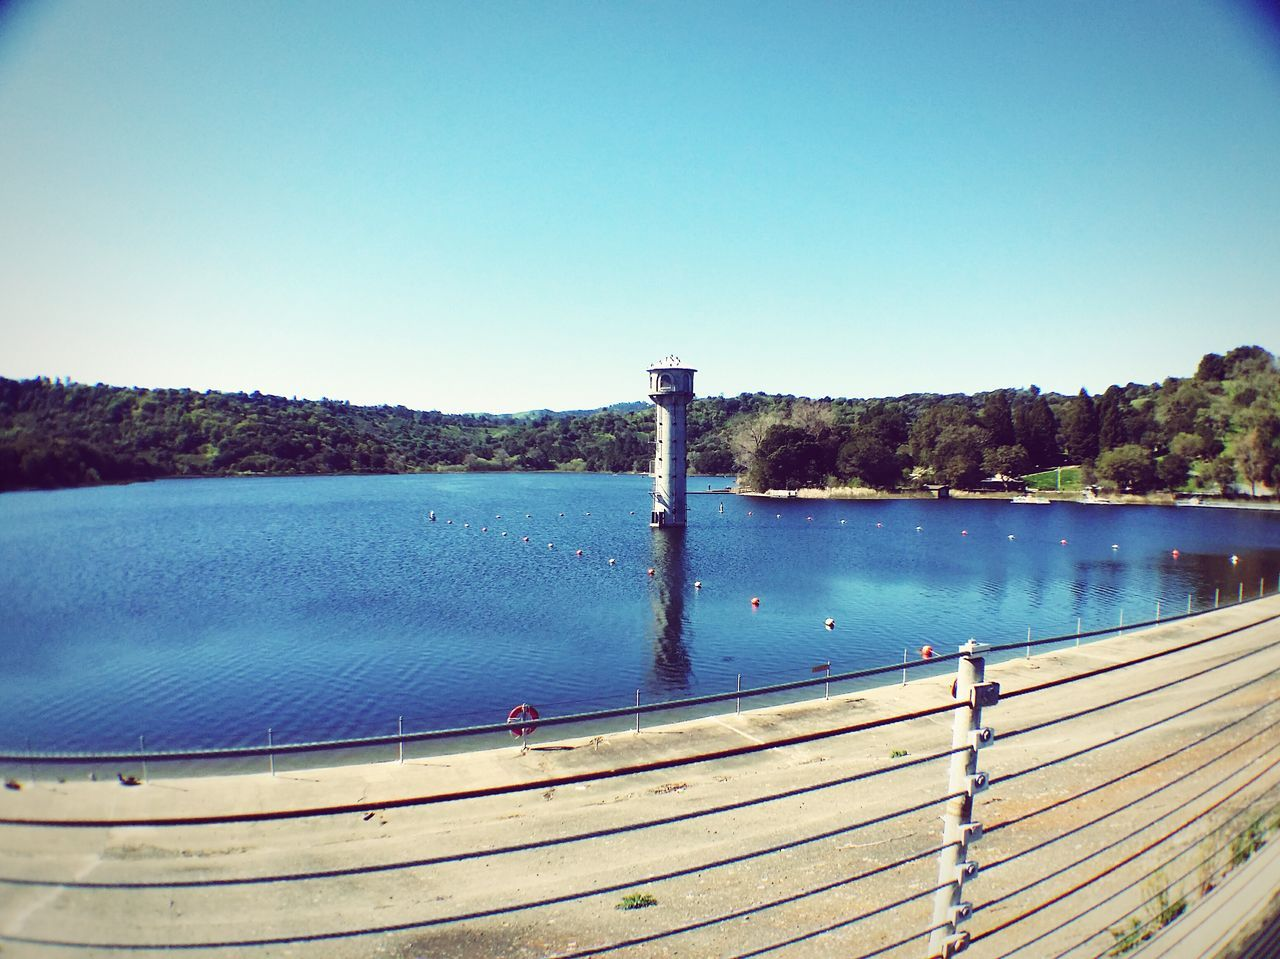 clear sky, blue, water, no people, day, river, outdoors, nature, scenics, beauty in nature, tree, sky